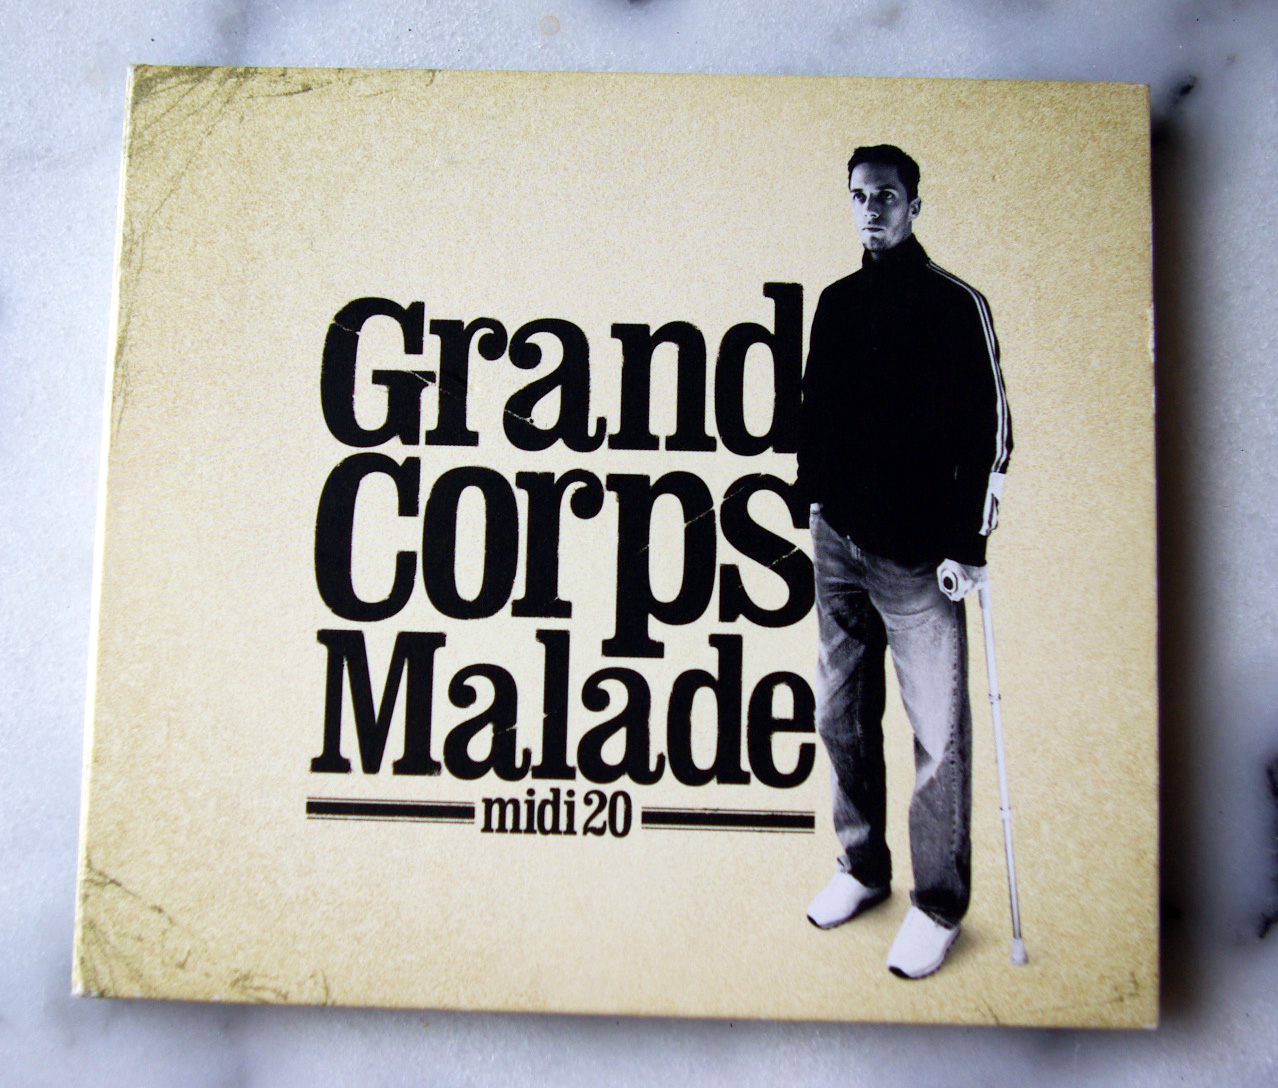 Grand corps malade la rencontre mp3